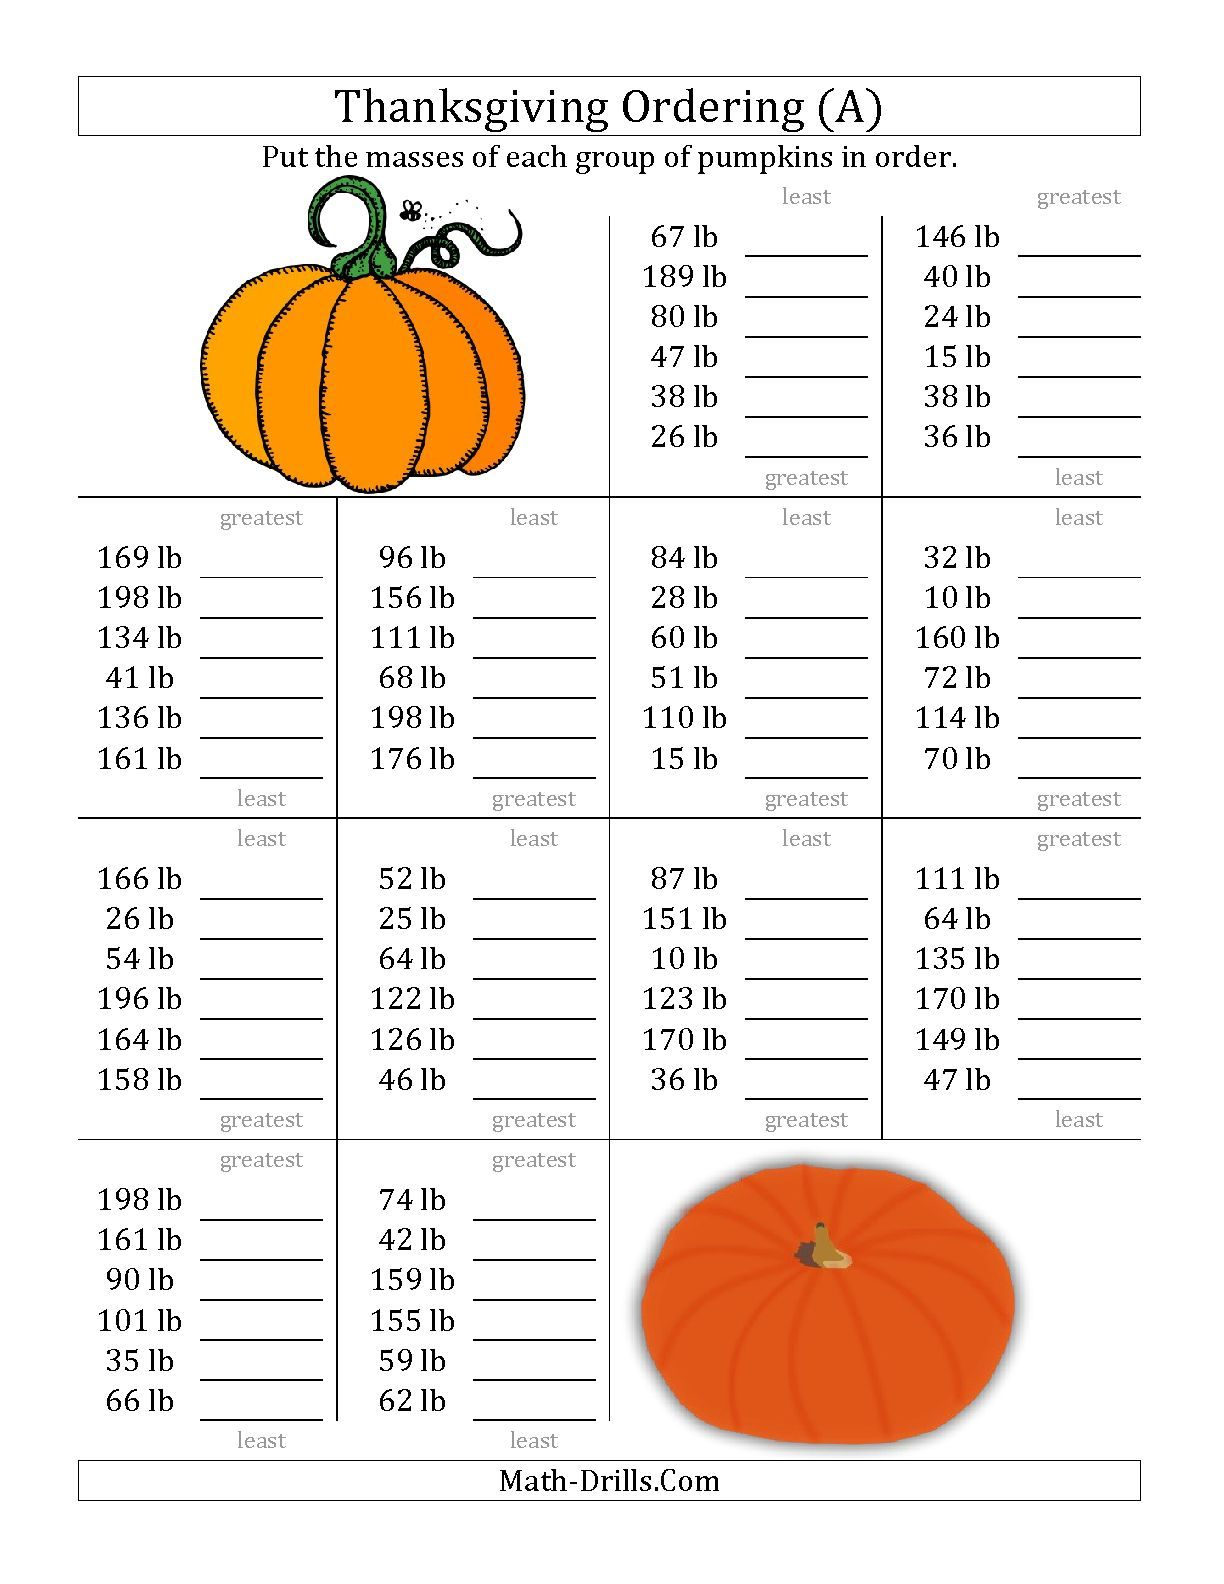 math worksheet : the ordering pumpkin masses in pounds a math worksheet from the  : Math Worksheets Middle School